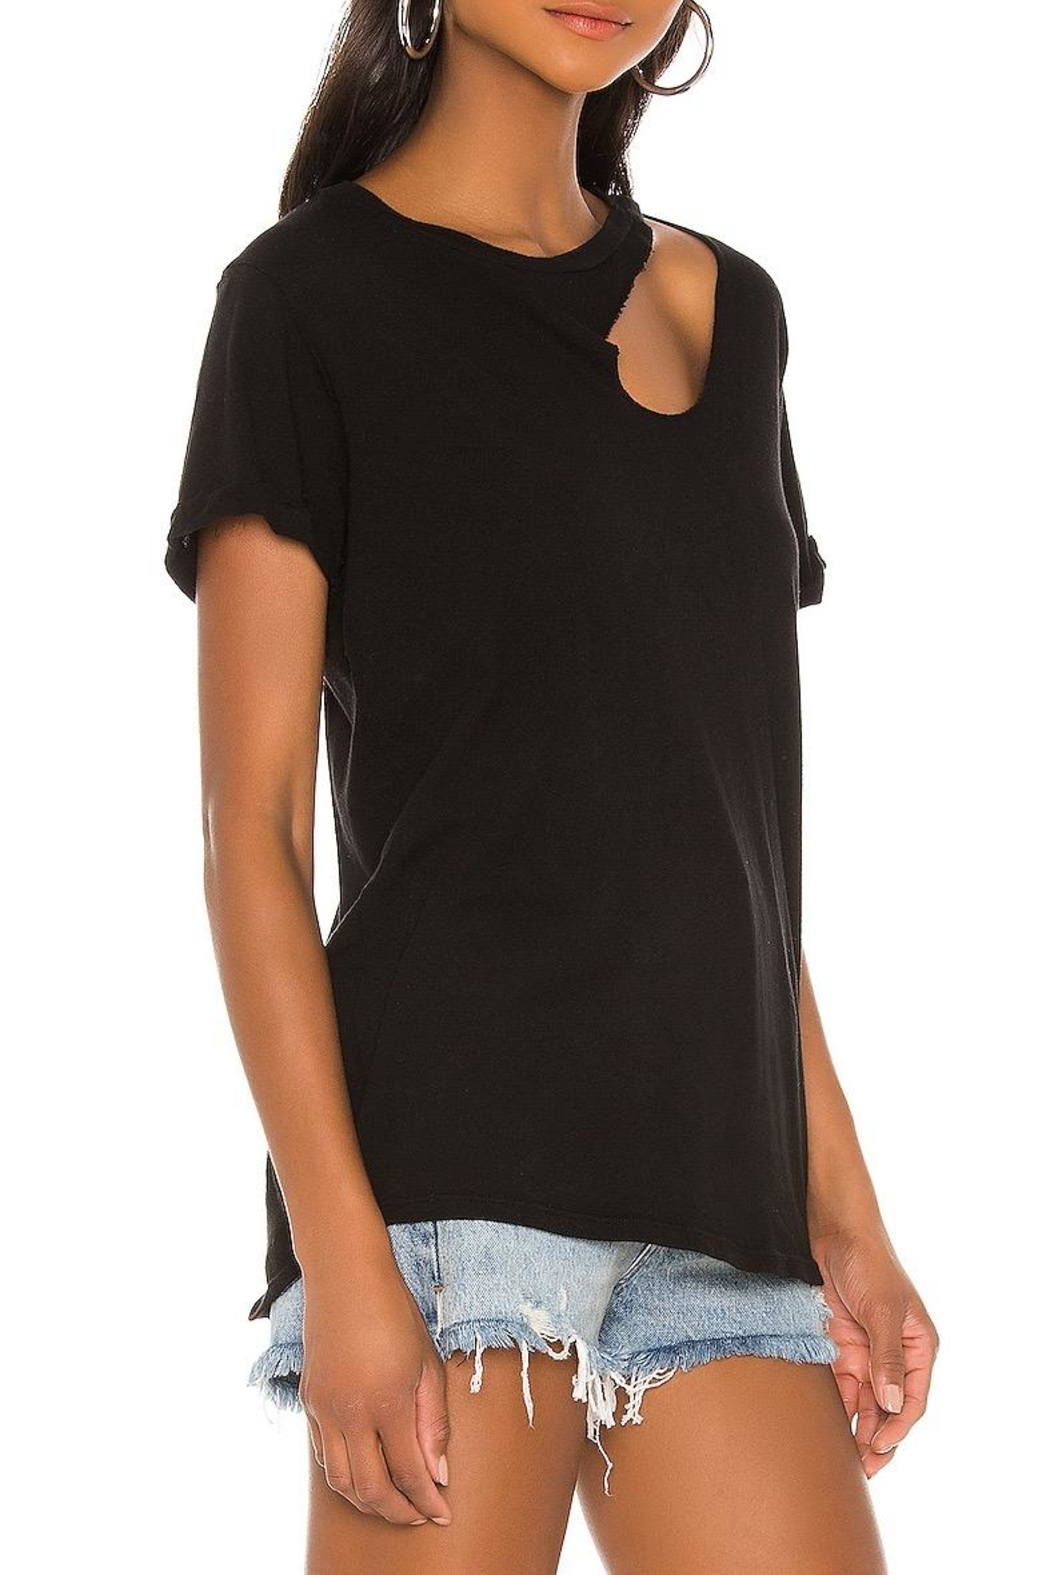 Michael Lauren Berkley Cut-Out Tee - Front Full Image